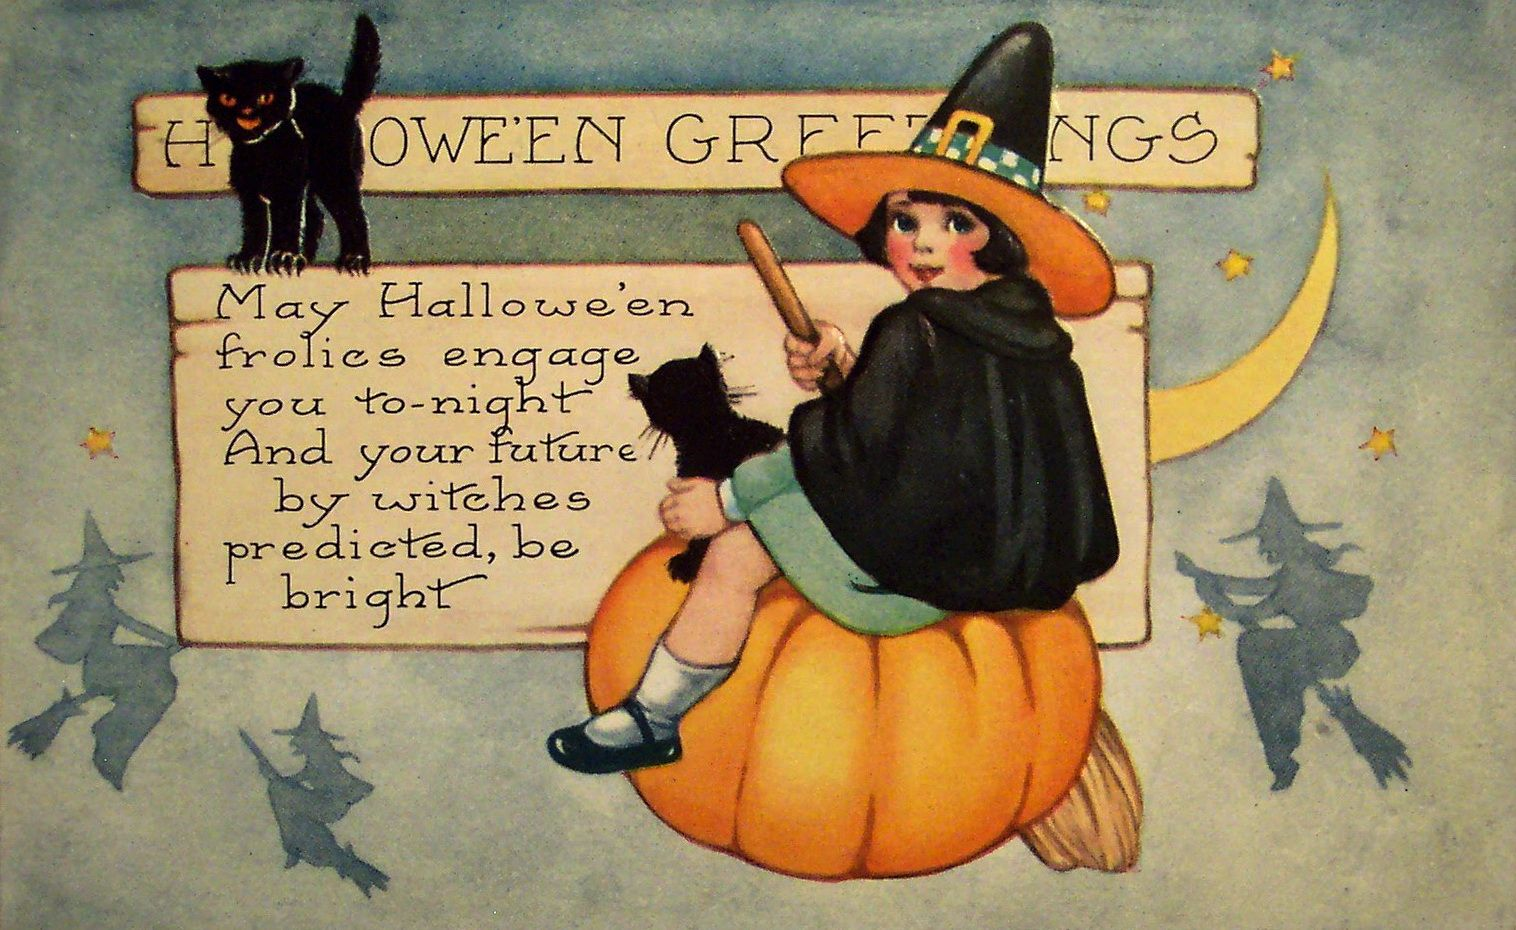 Amazing Wallpaper Halloween Vintage - 00145[1516x930x24BPP]  Pic_236013.jpg